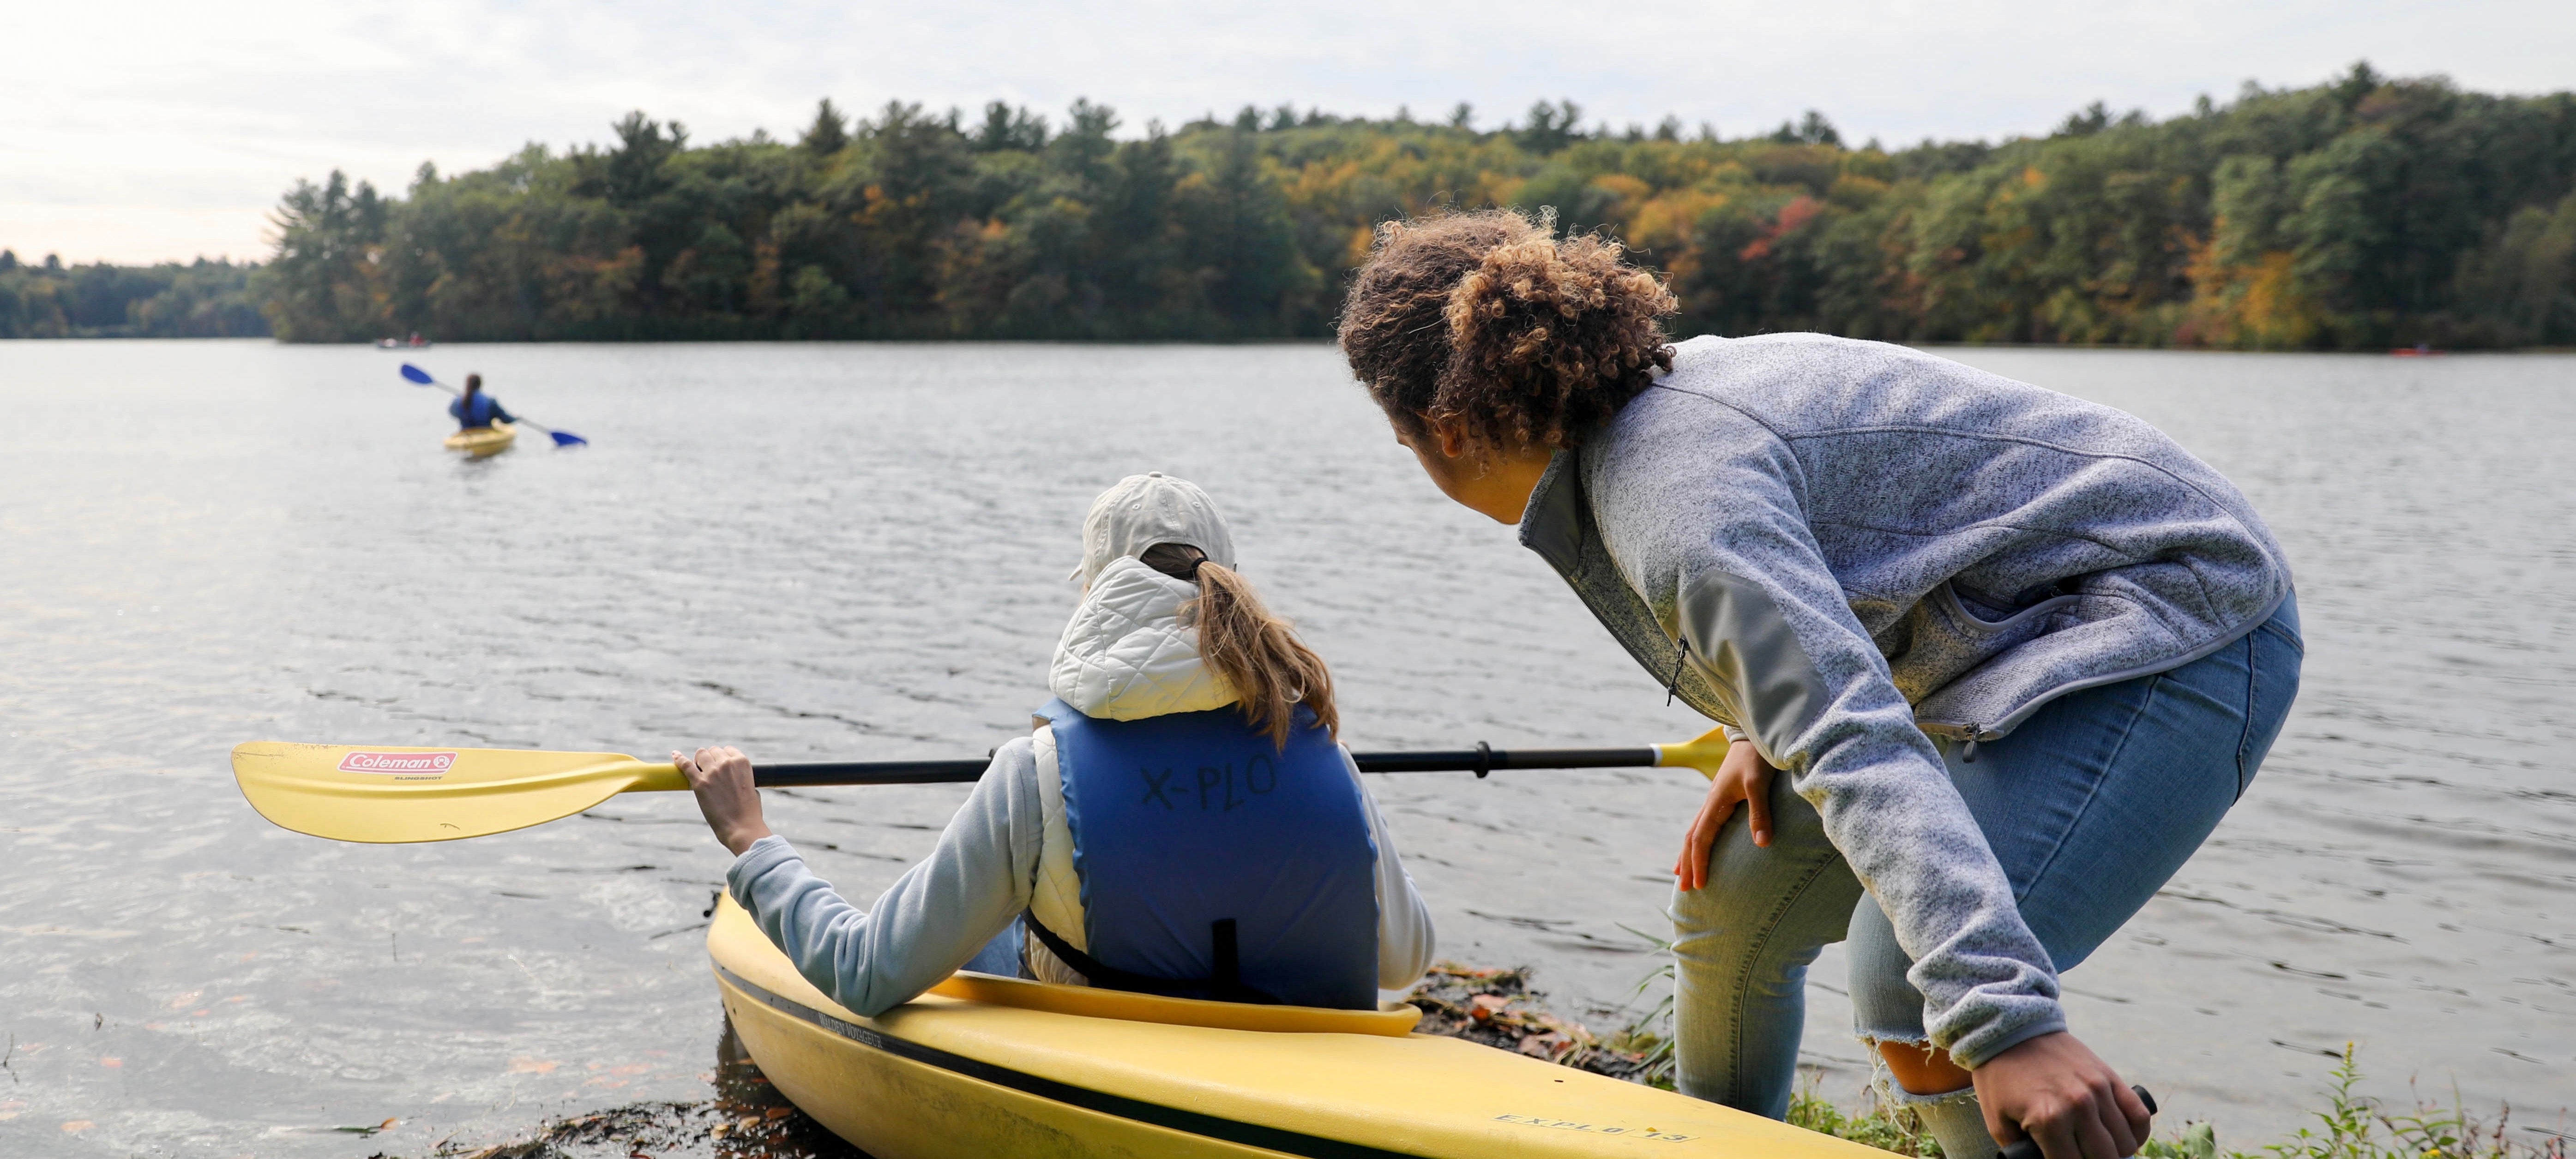 A student sits in a yellow kayak, wearing a blue life jacket. Another student is pushing them off from the shallow water.